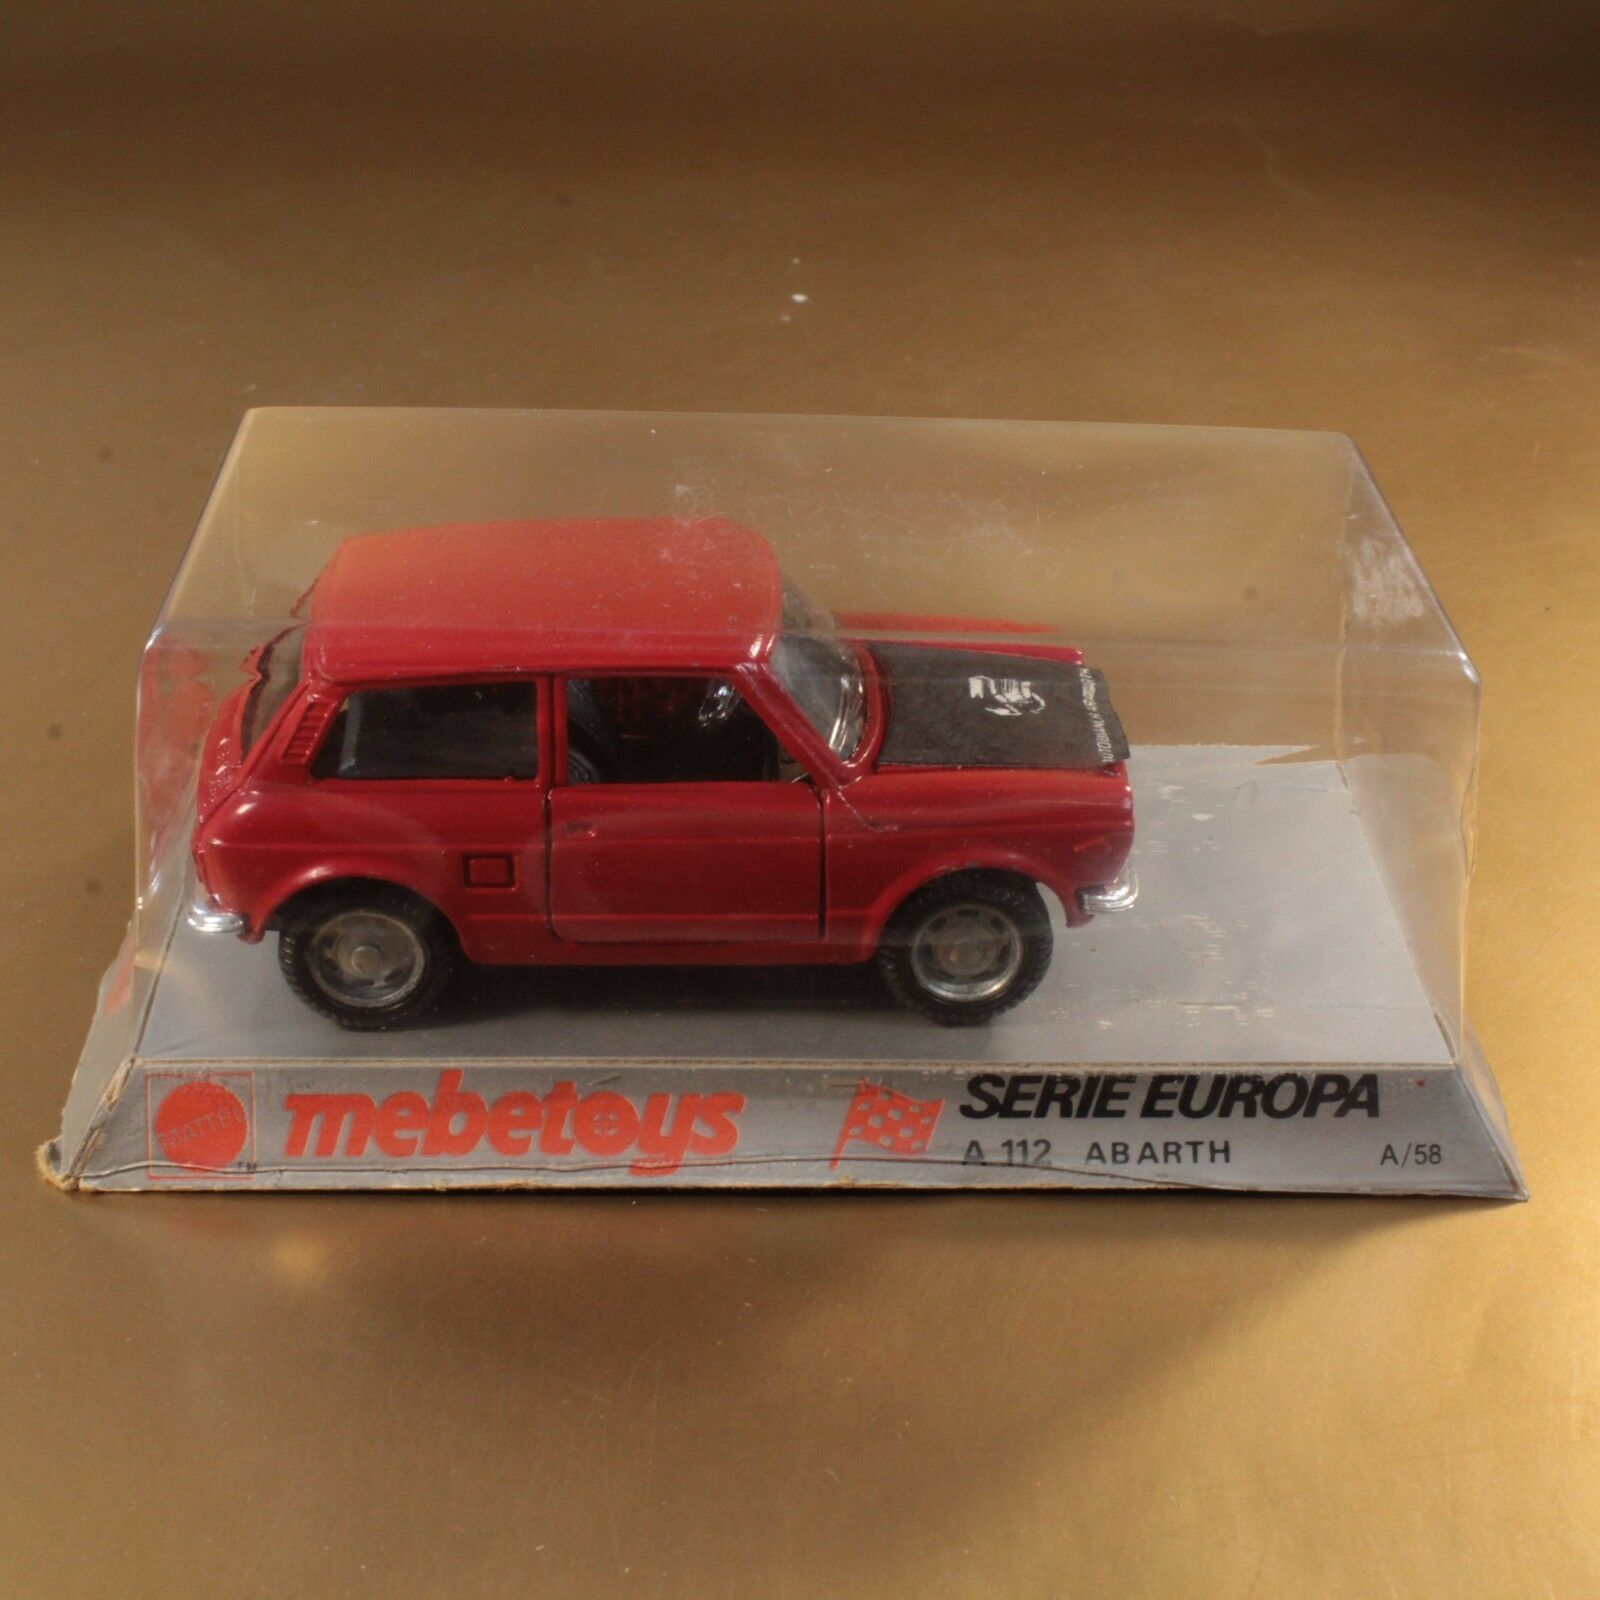 Mattel MEBETOYS a 58 a58 1 ° Series Europe a112 to 112 abarth NEW [oh3-16]